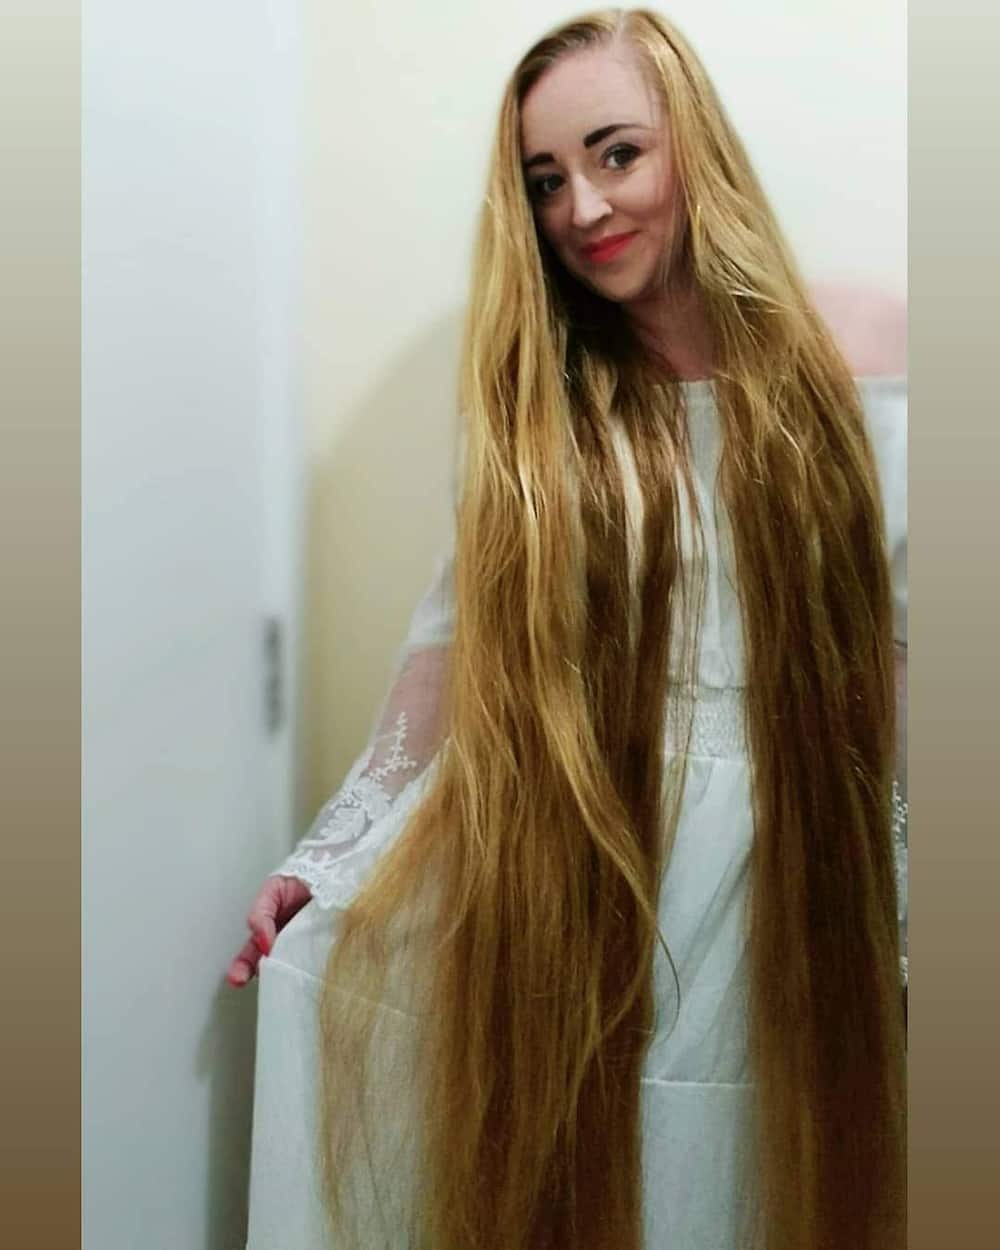 Meet real-life Rapunzel who hasn't been to the hairdressers in 5 years (photos)